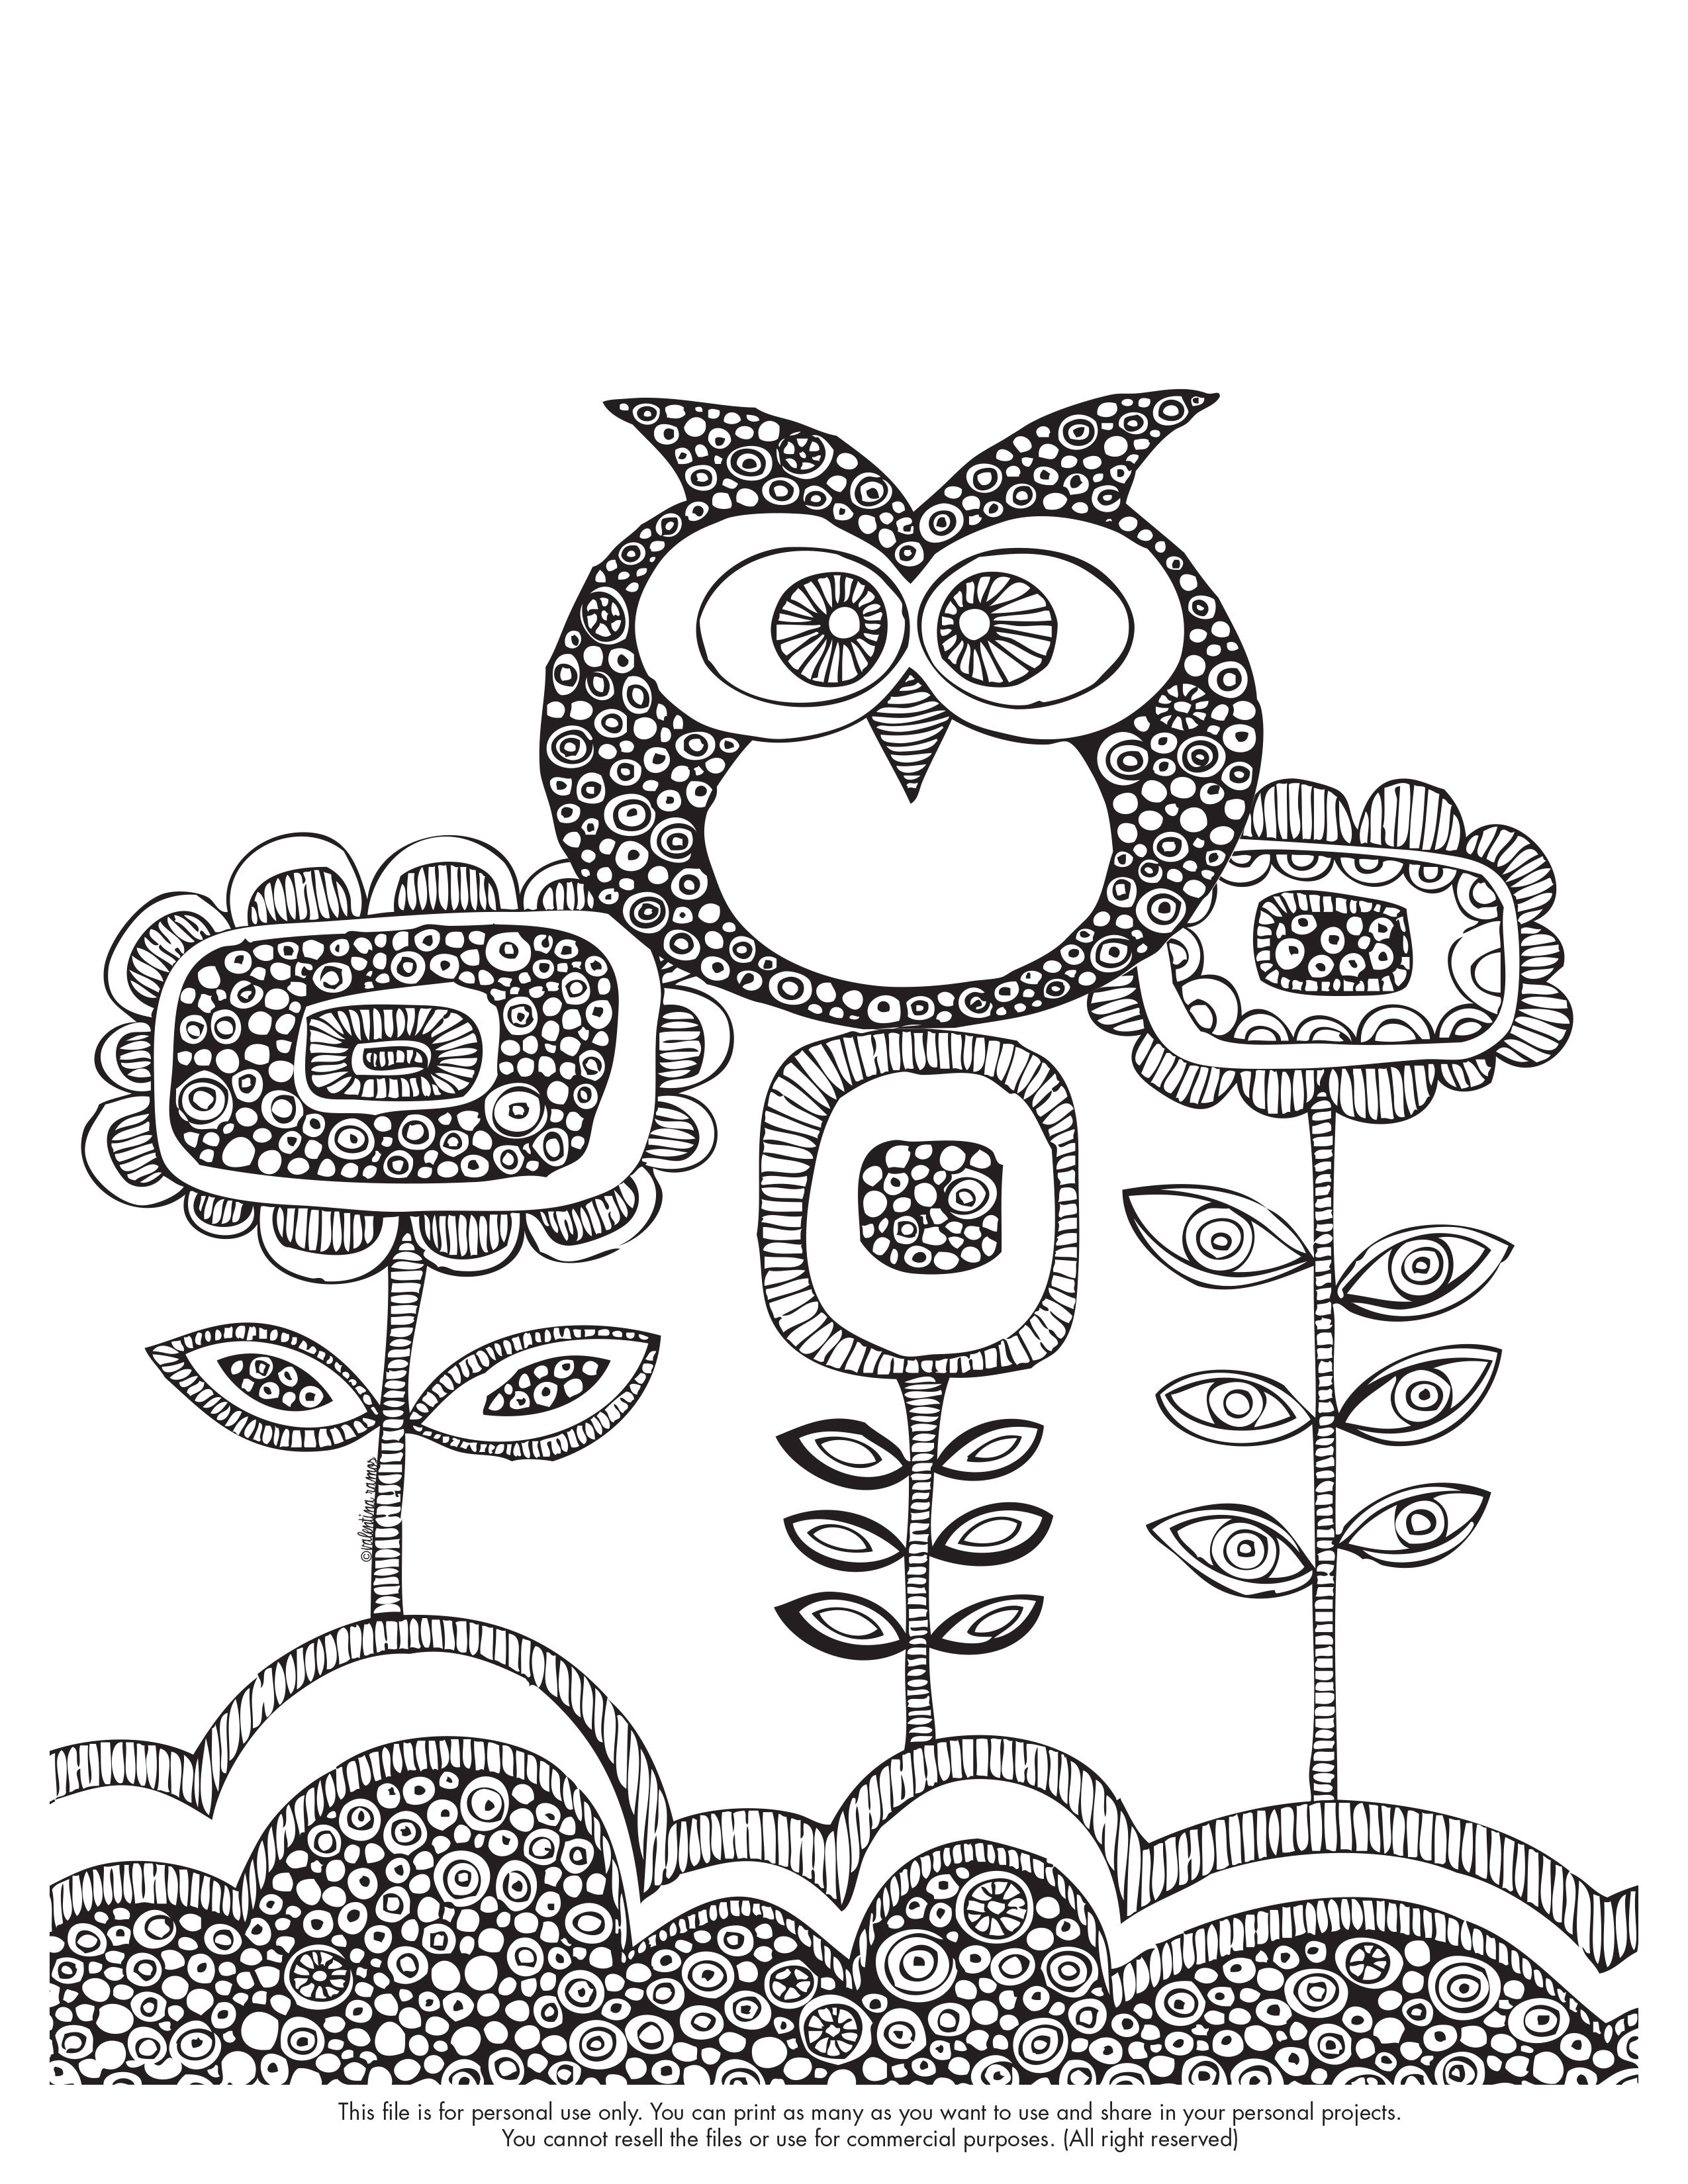 Drawing pages on computer - Free Coloring Page Save The Image In Your Computer To Print